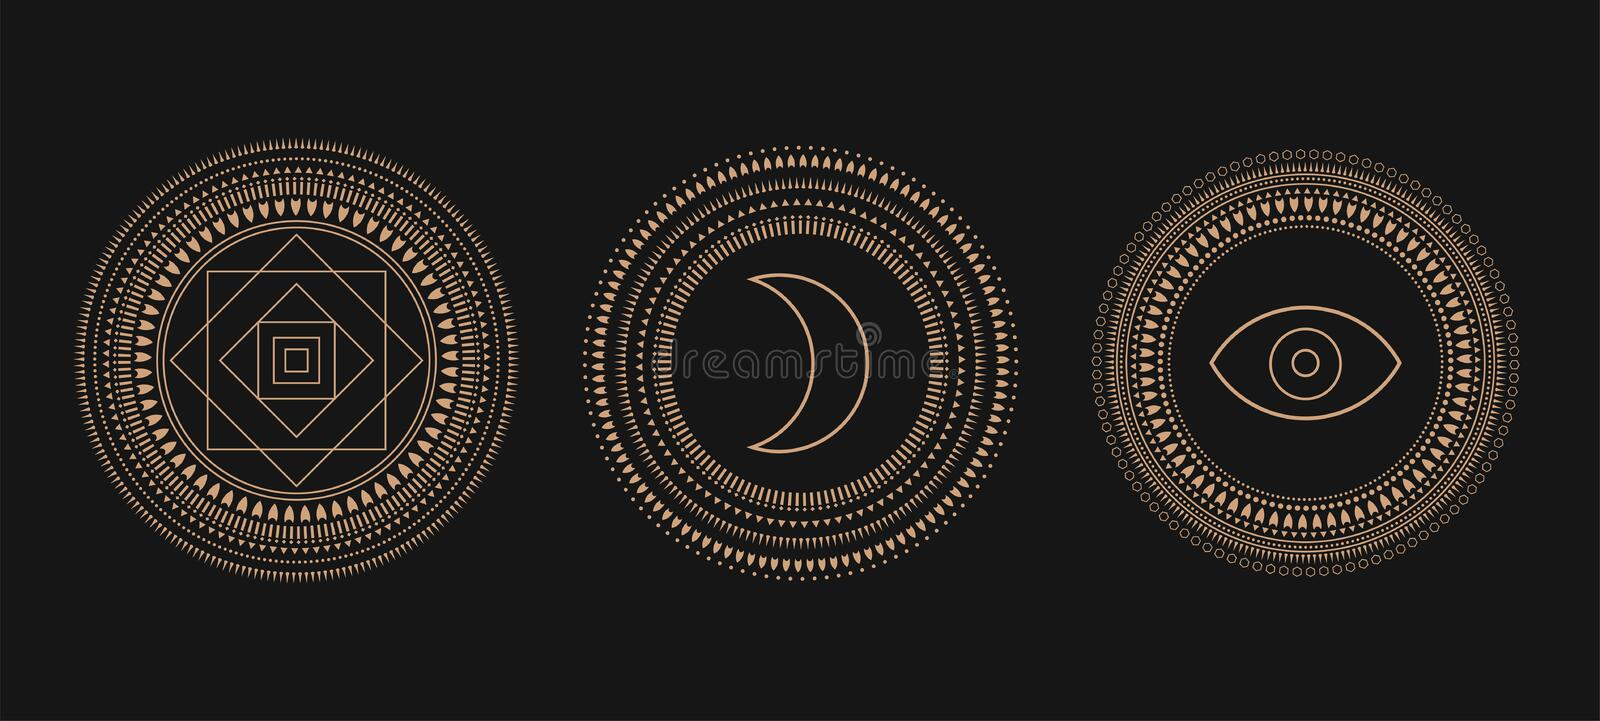 Vector Set of Circle Geometric Ornaments. Geometric alchemy symbol. Abstract occult and mystic signs. royalty free illustration